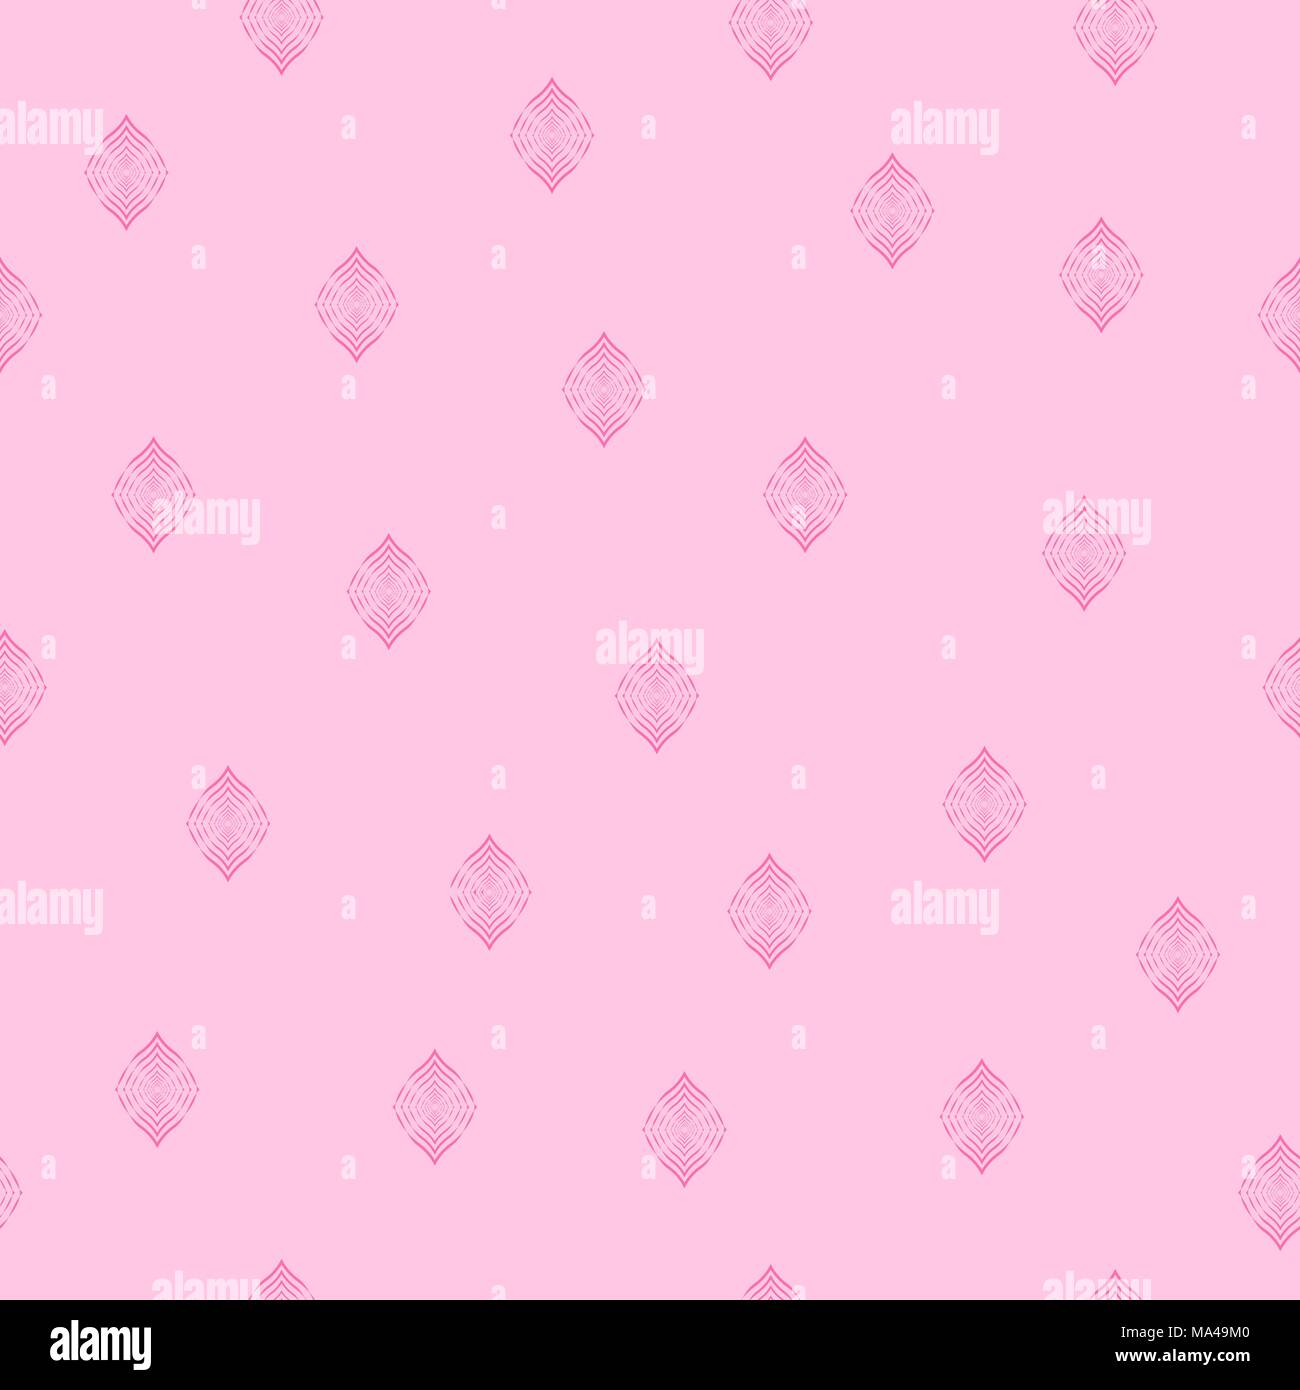 Seamless Pattern Pink Lines Geometric Vector Background. Pink Seamless